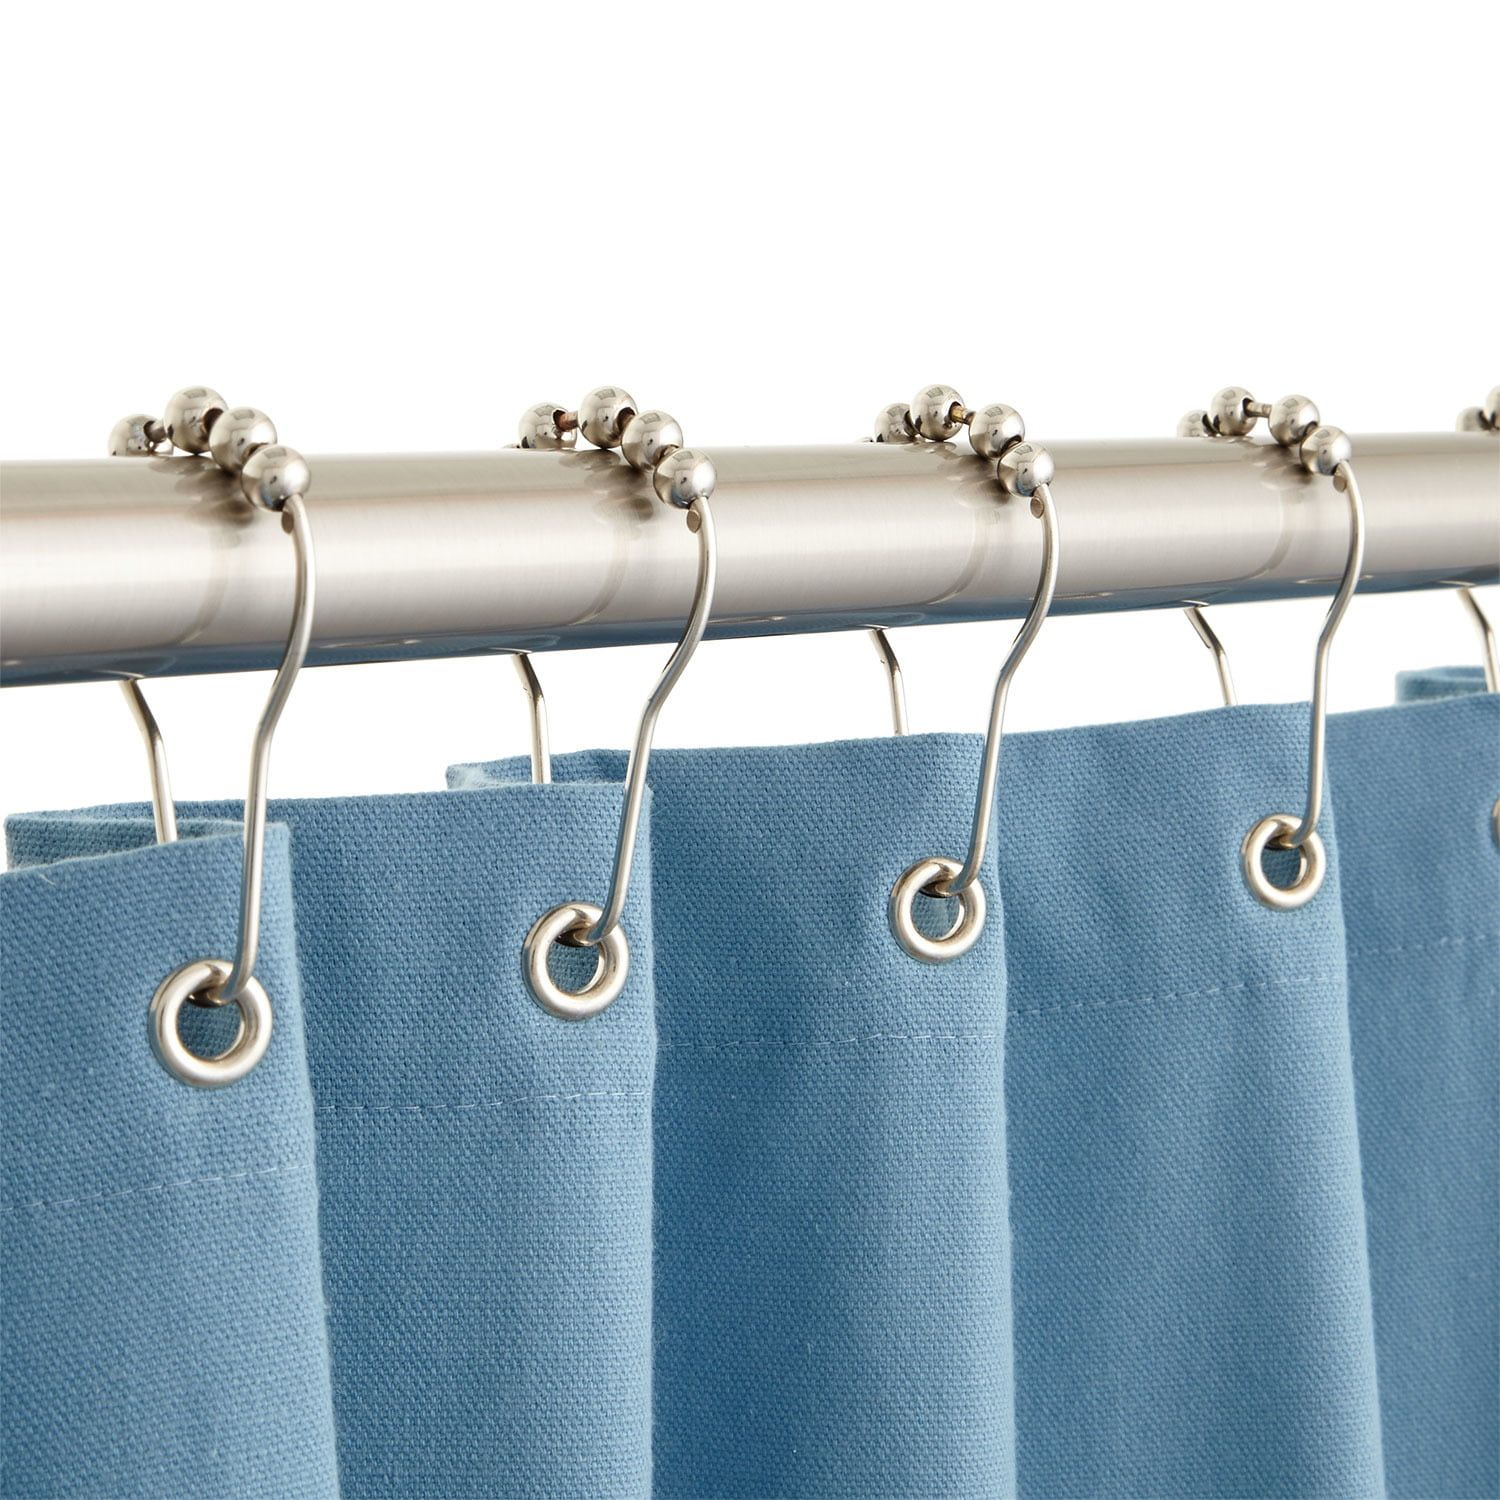 32 Round Solid Br Shower Curtain Rod Bathroom Curtains With Rings